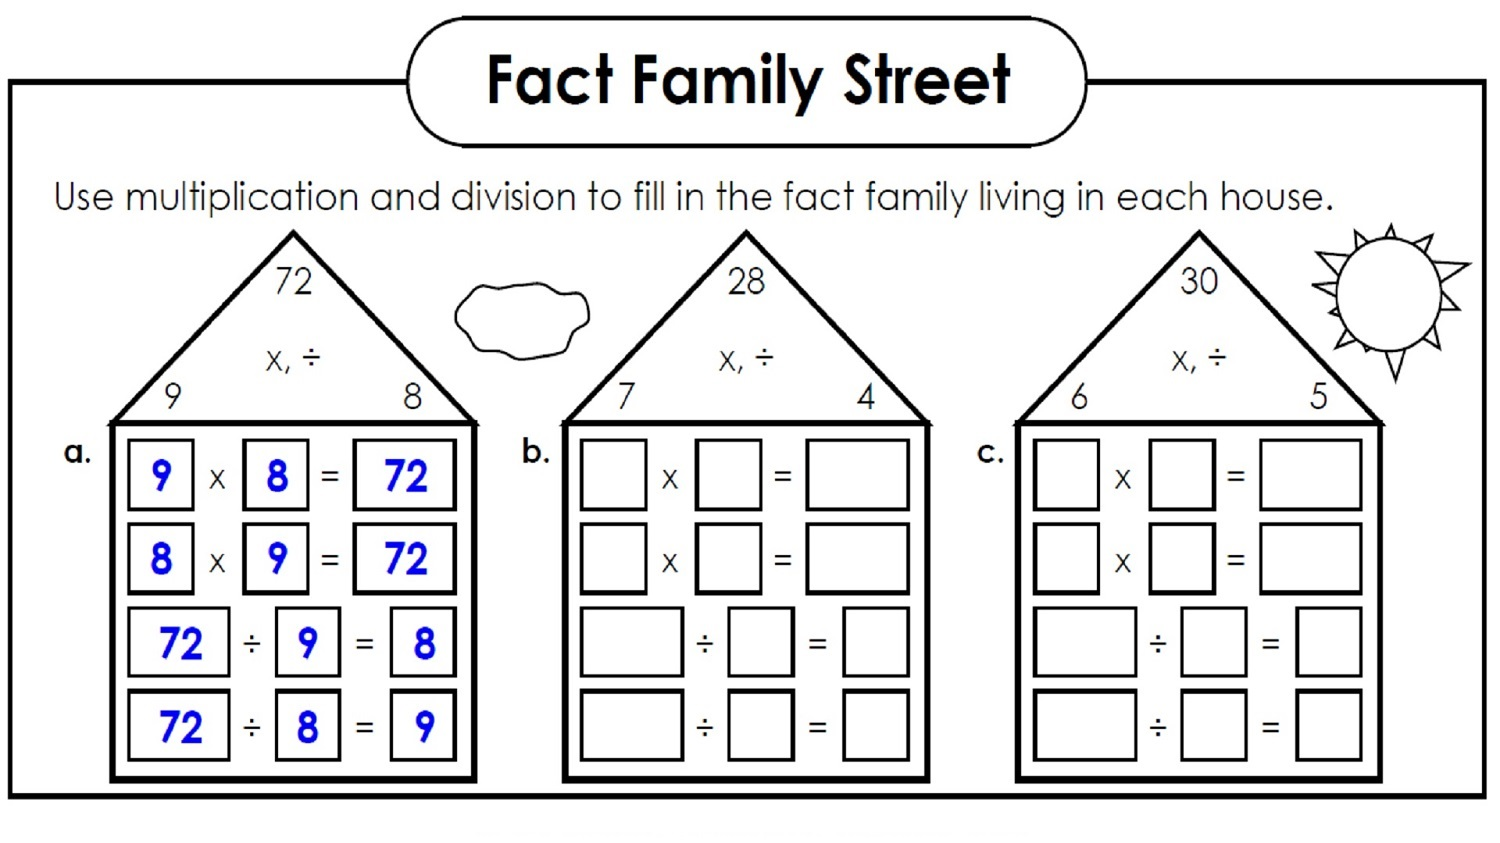 Worksheets Fact Family Worksheets fact family worksheets to print activity shelter worksheet house